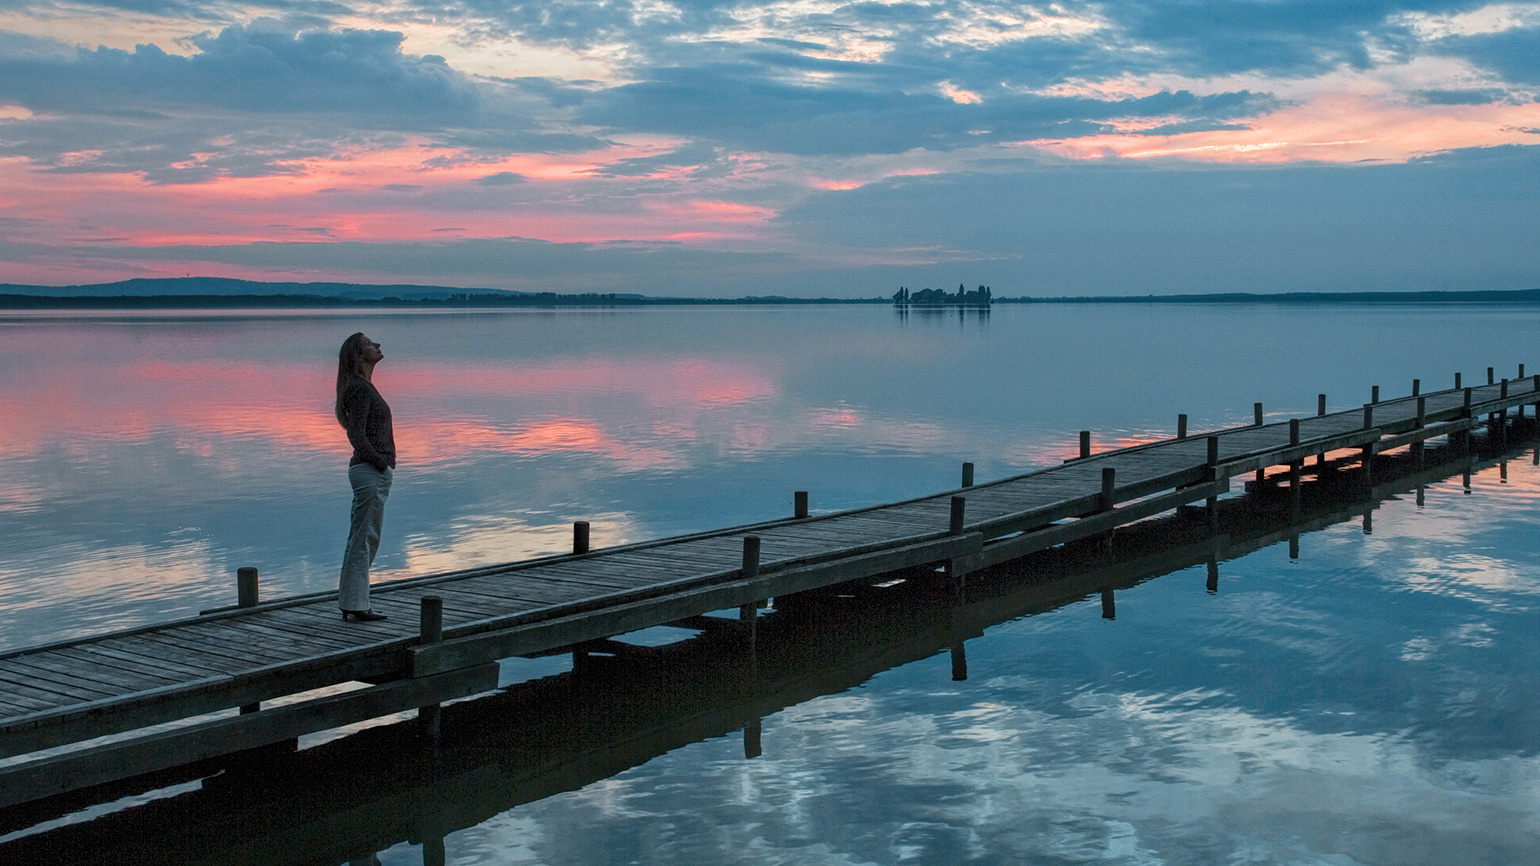 A woman stands on a pier at sunrise, looking heavenward